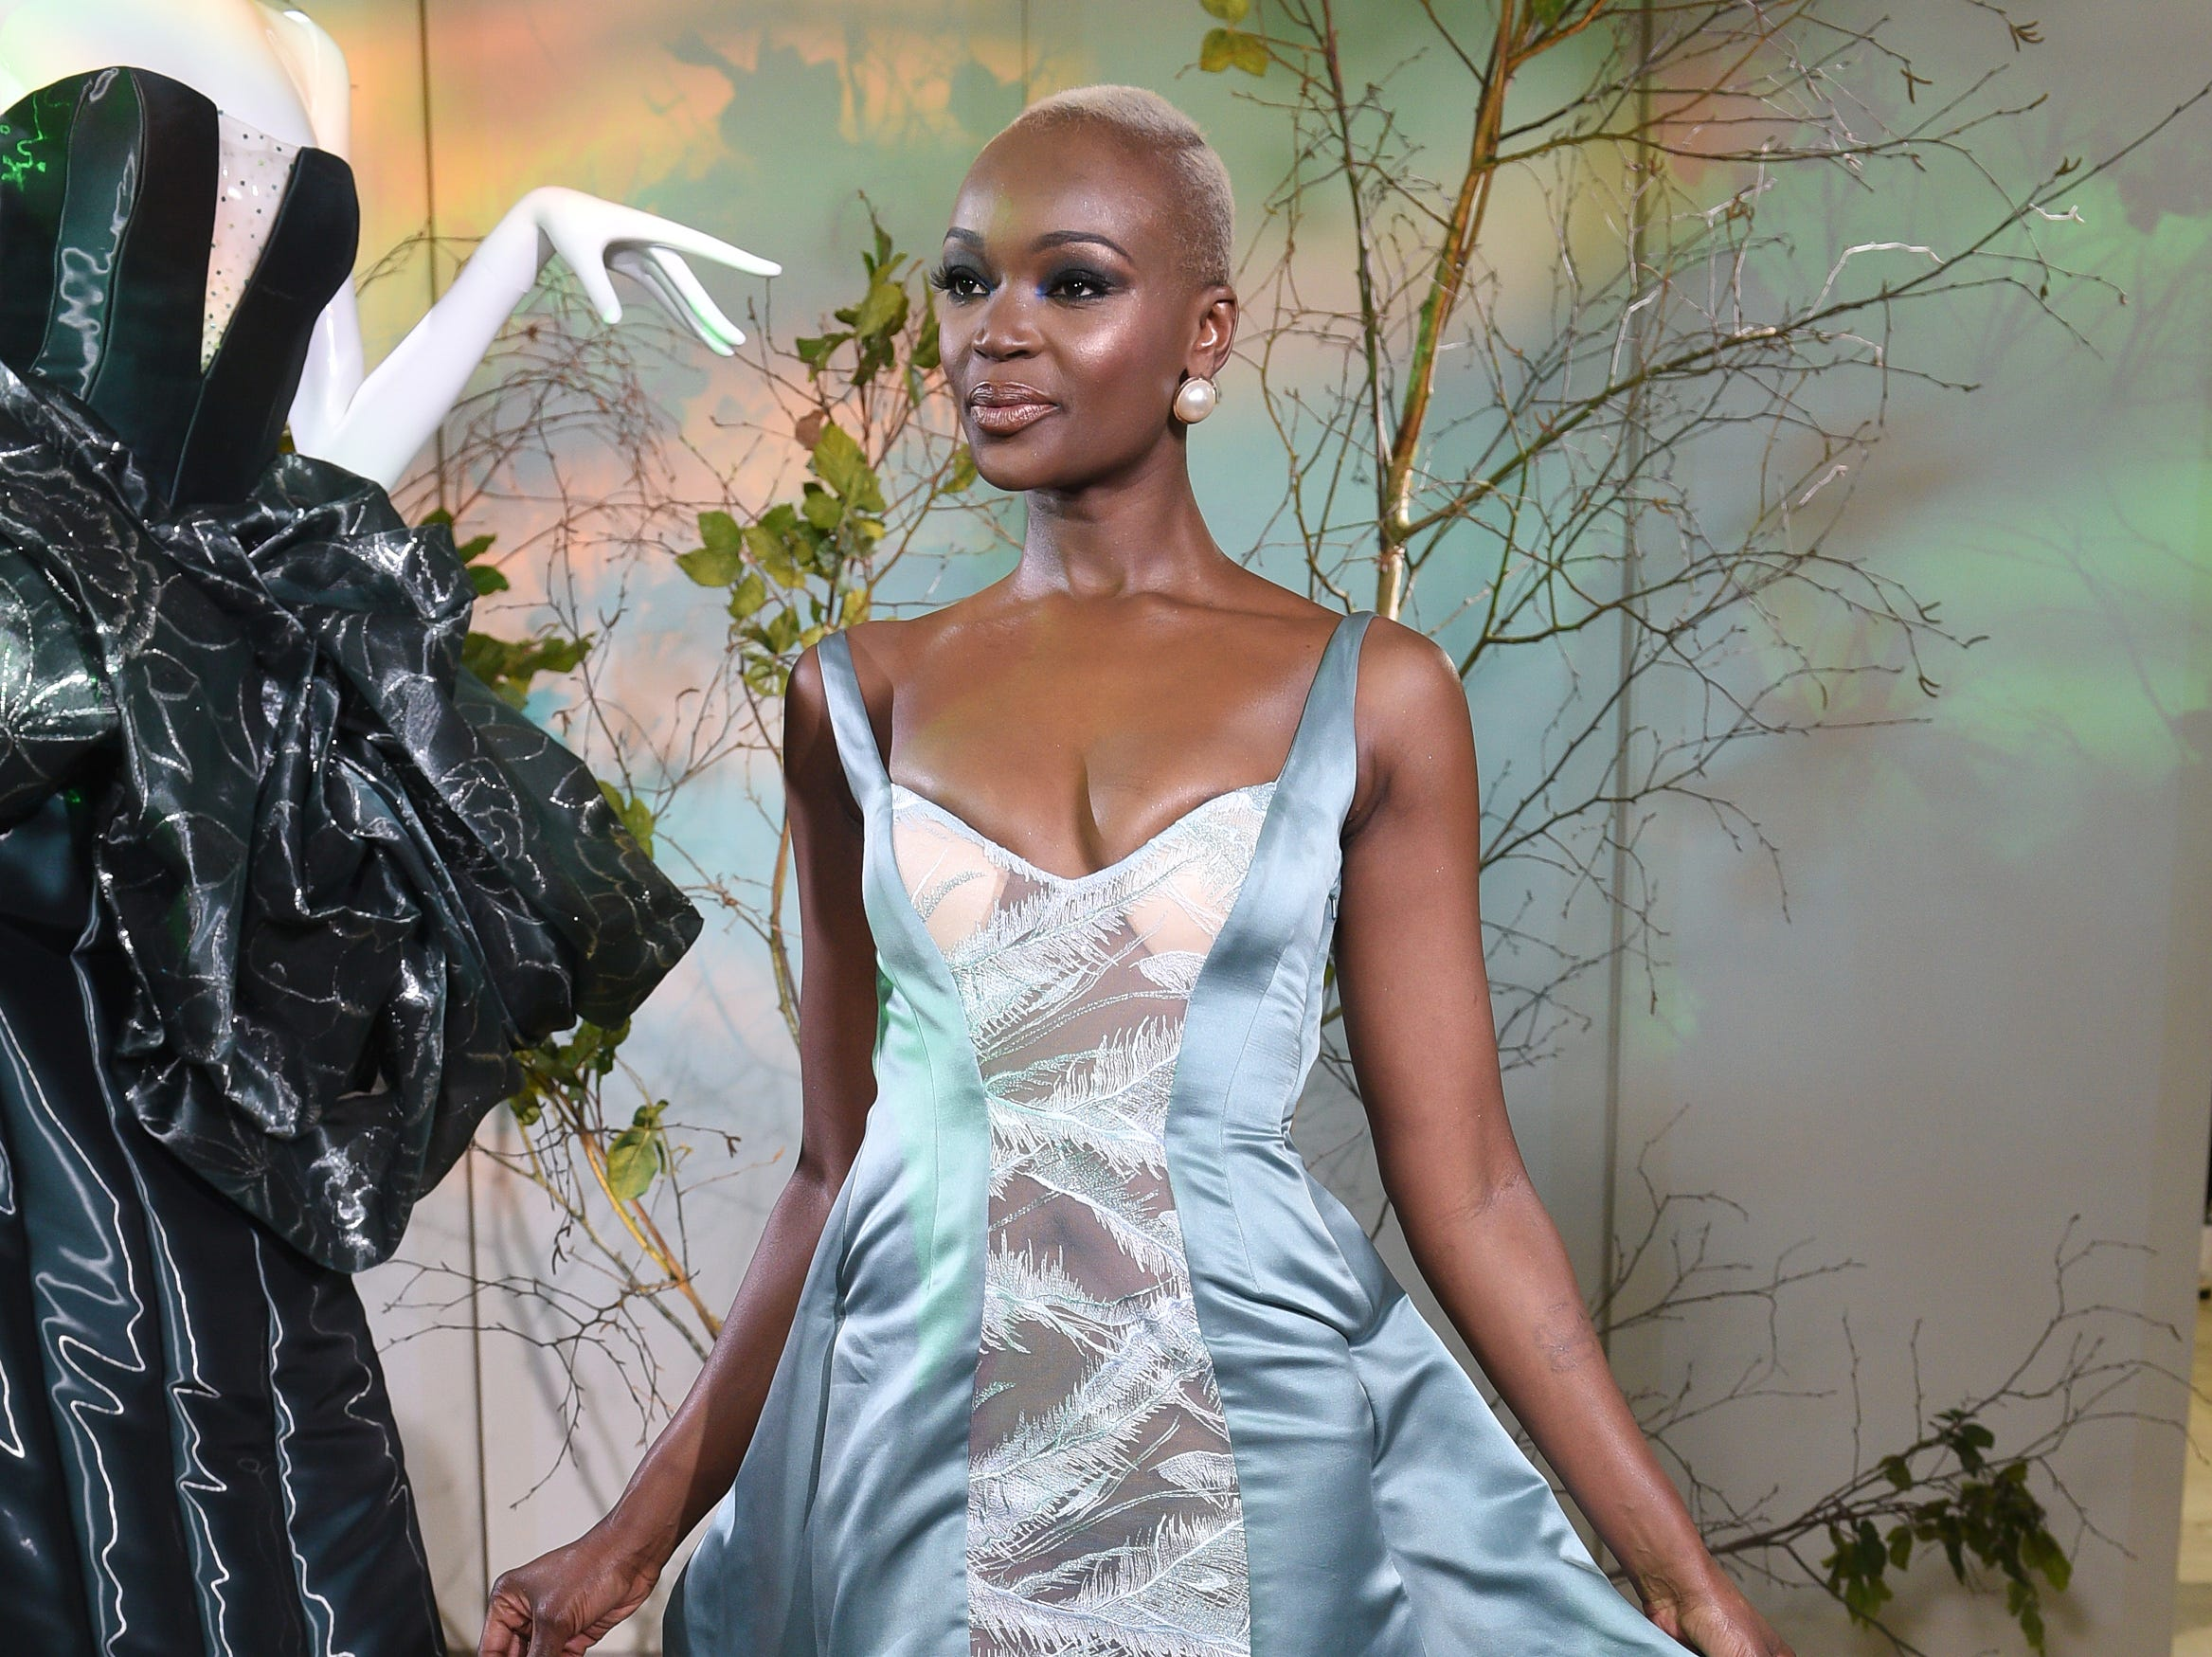 Miss Tanzania attends the Gyunel presentation at the Ritz Hotel on Tuesday, Jan. 22, 2019 in Paris.